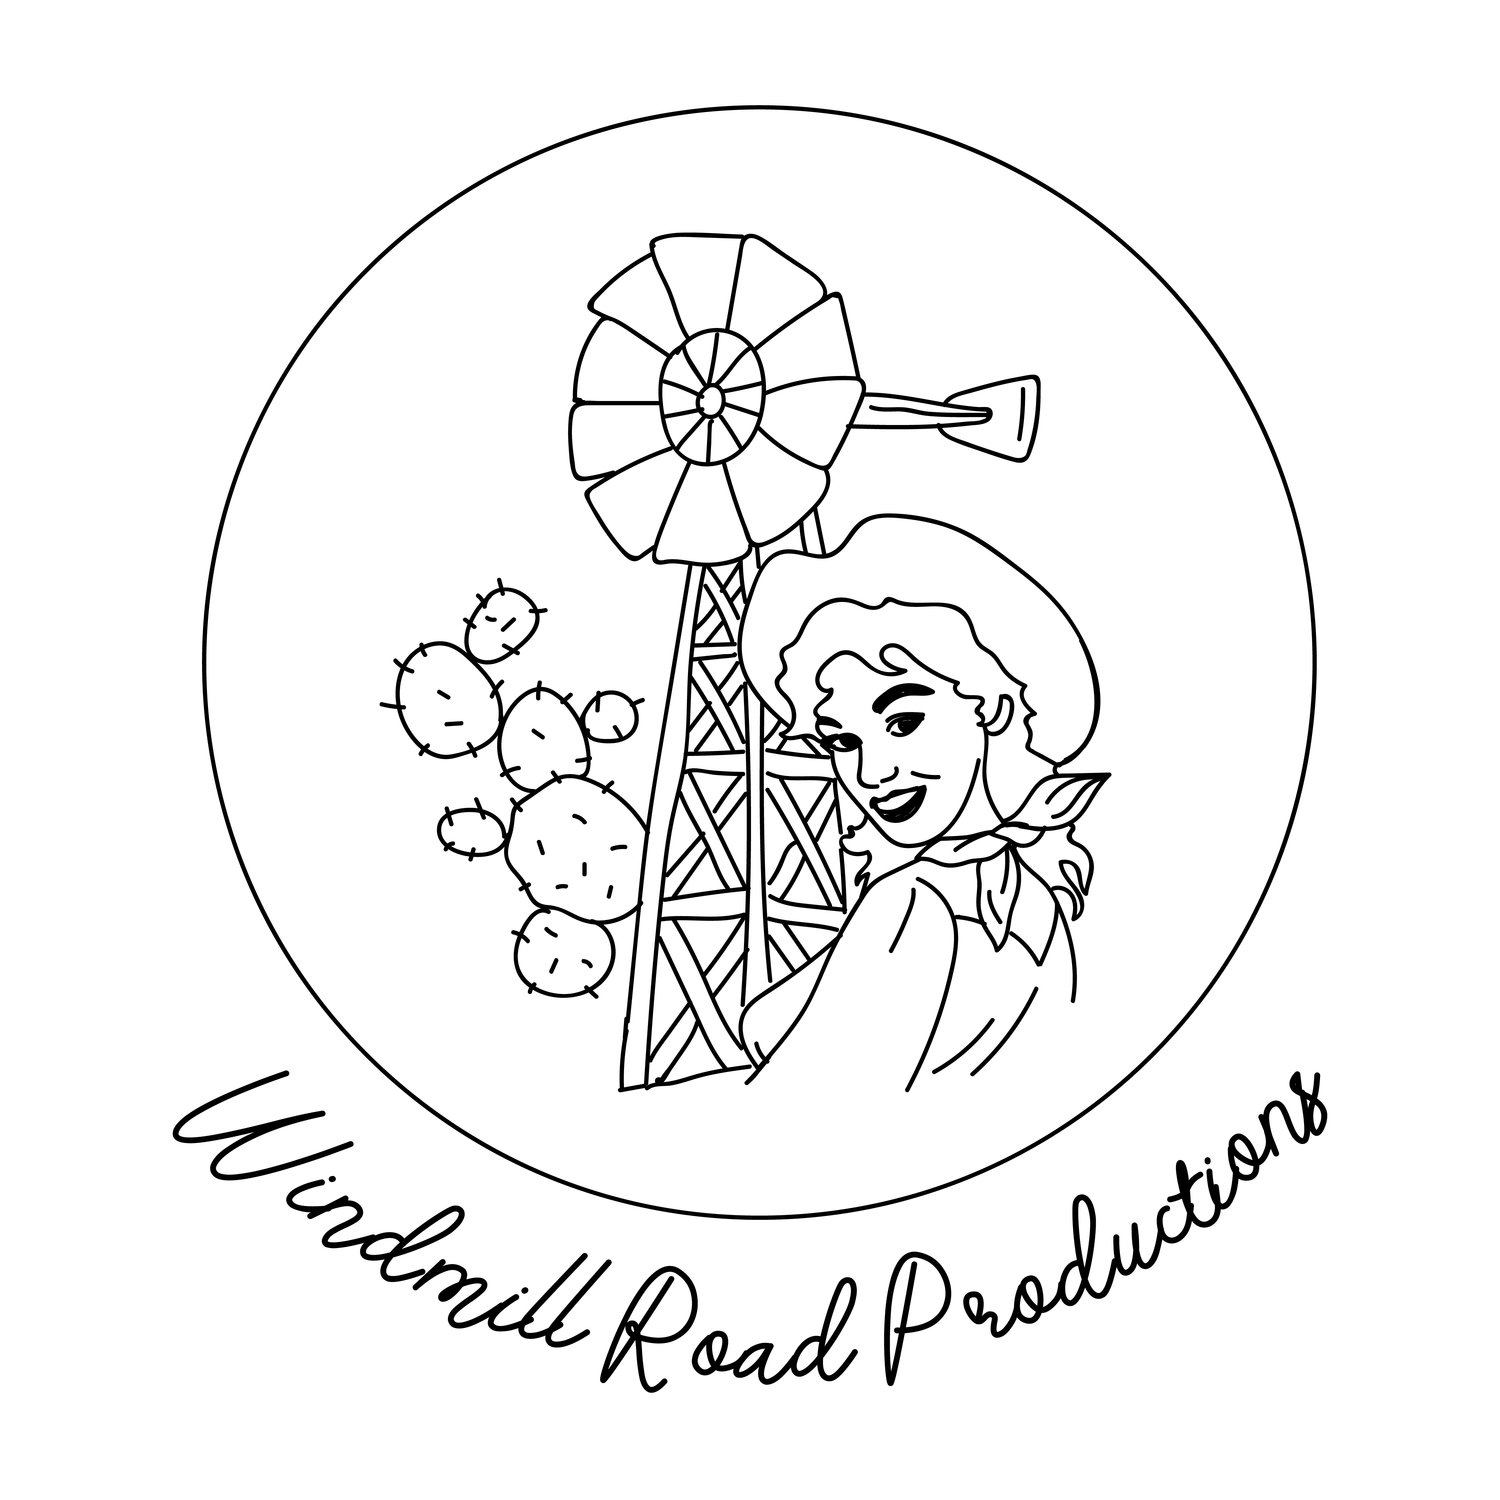 Windmill Road Productions